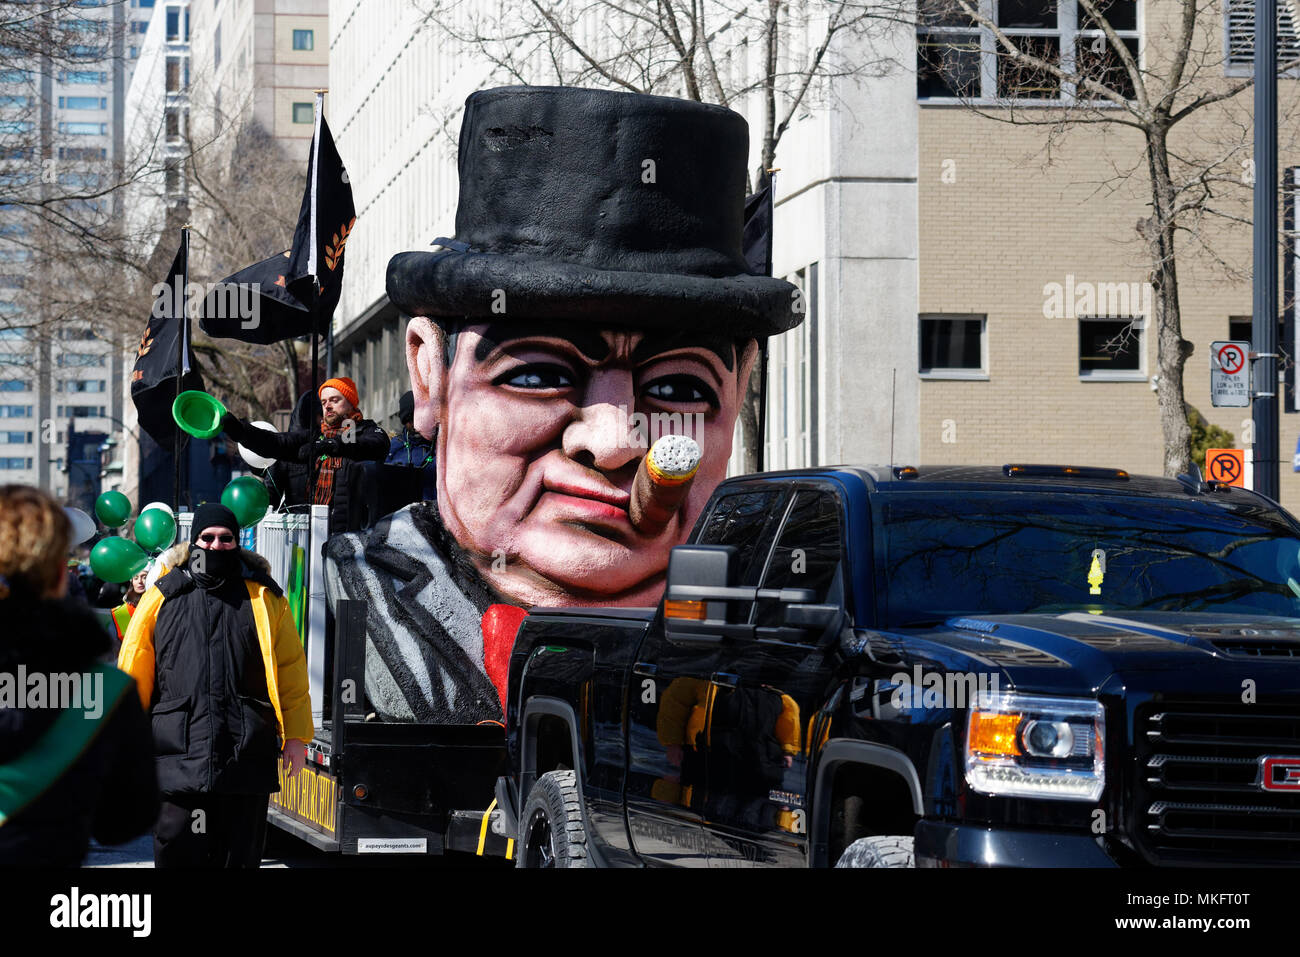 An effigy of Winston Churchill in the Montreal St Patrick's Day parade - Stock Image